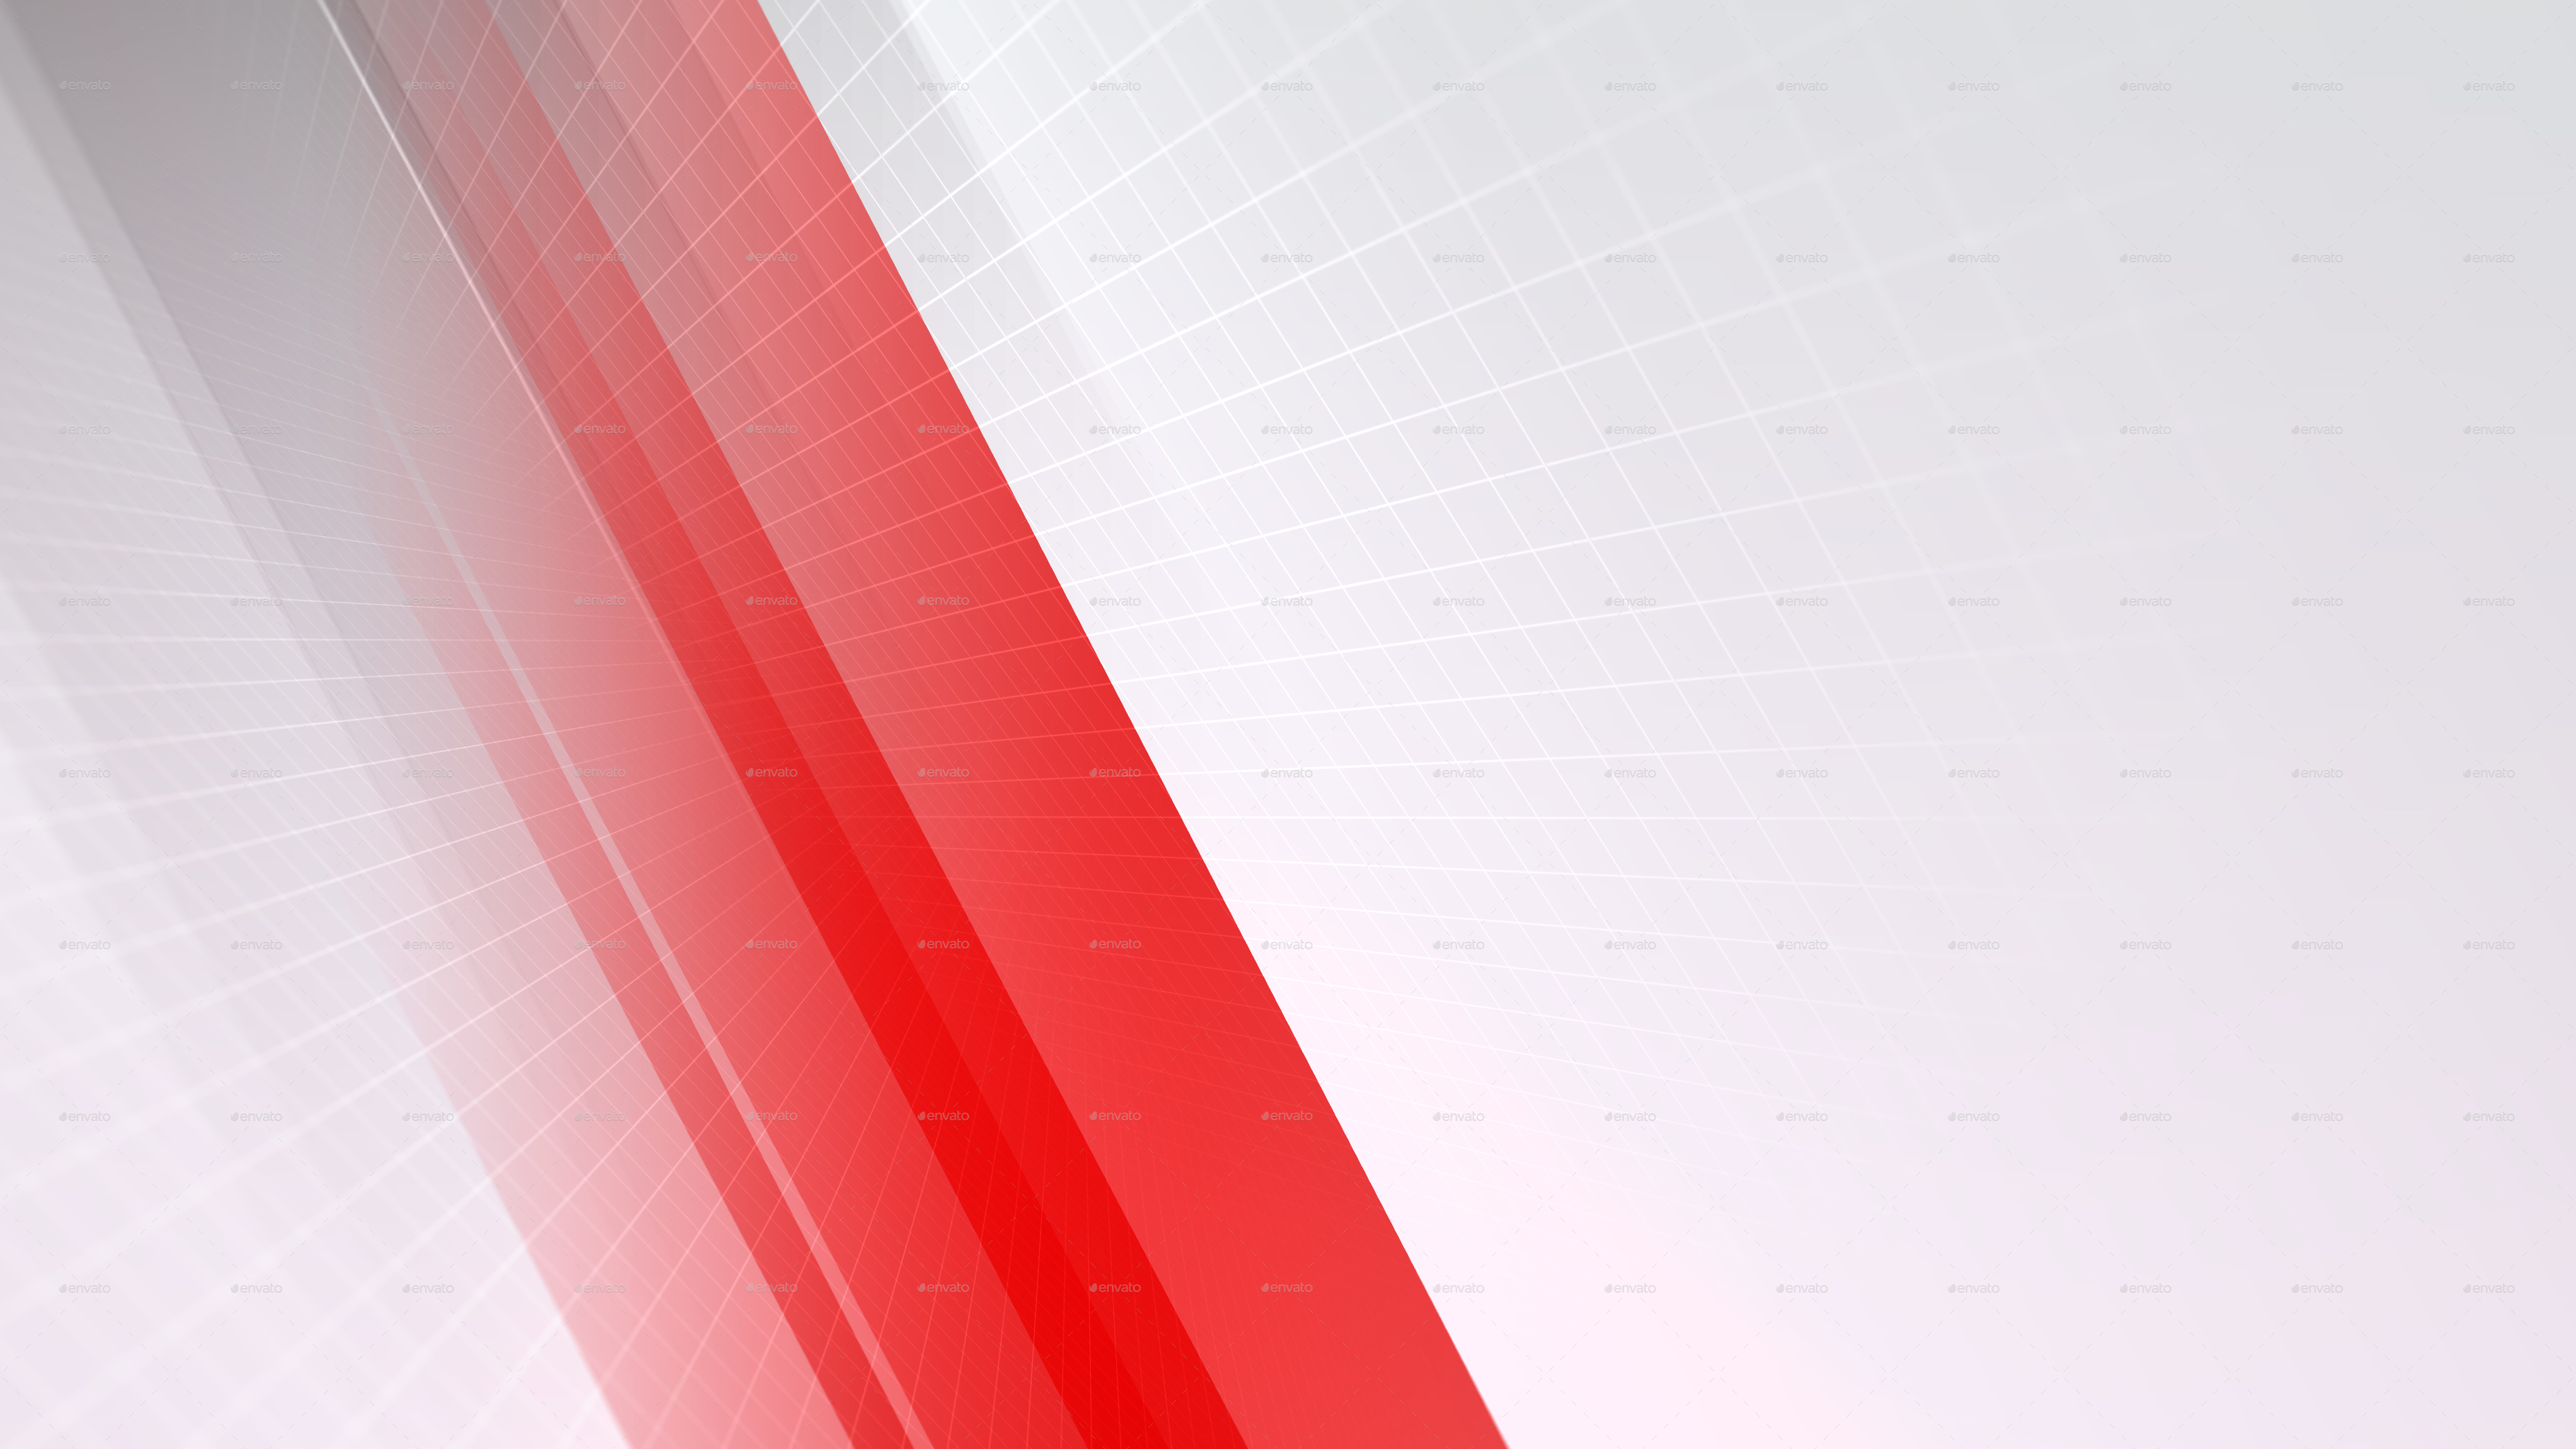 Clean Corporate Background By Vmogfx